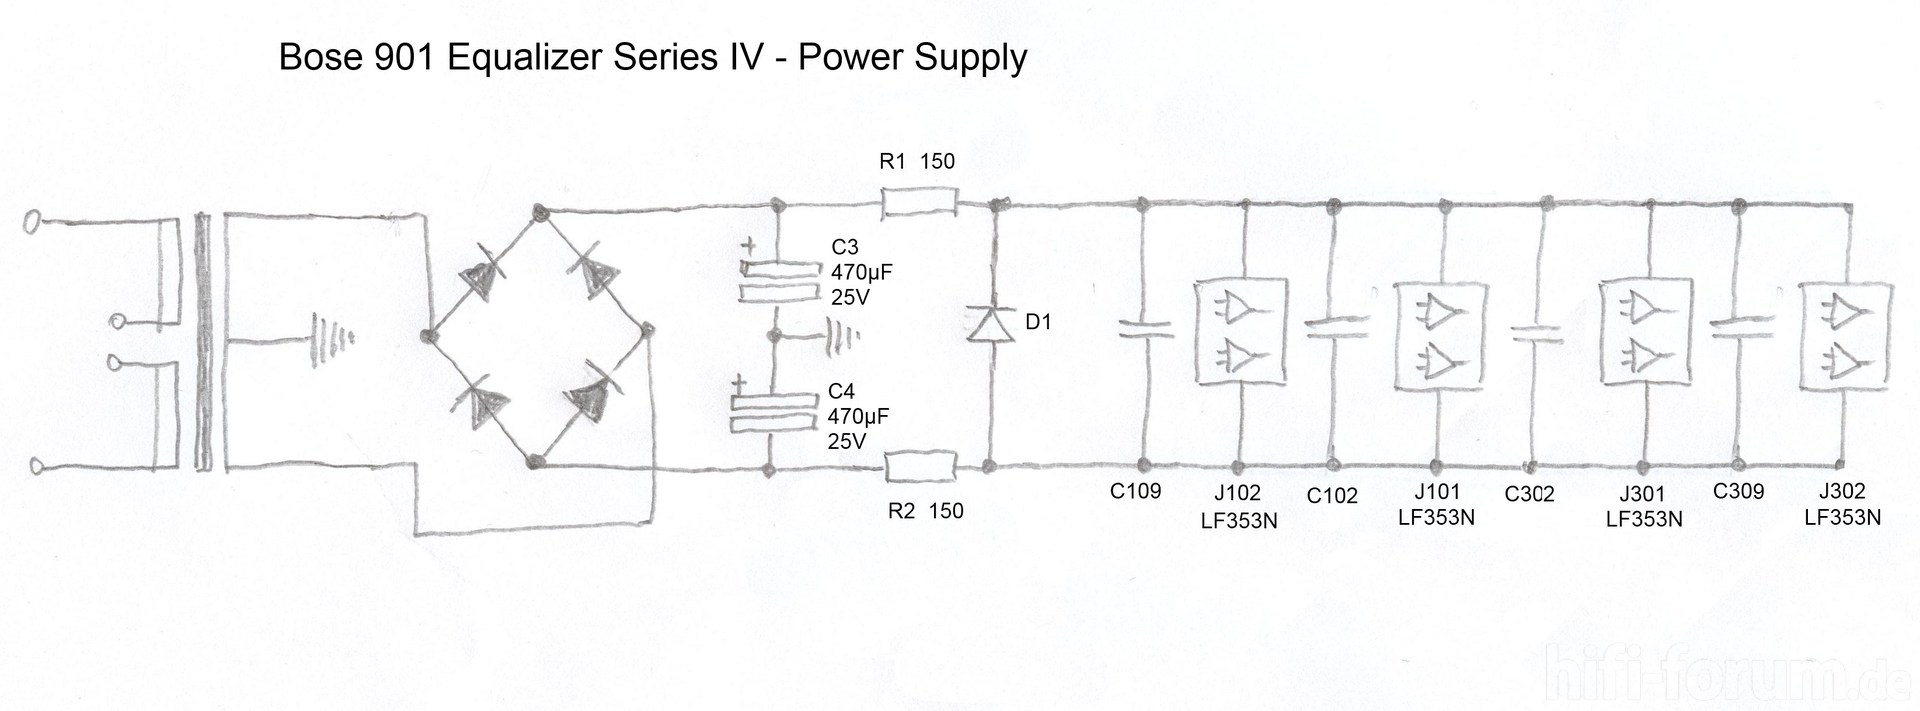 bose 901 speaker wiring diagram wiring diagram  bose 901 speakers series wiring diagram all wiring diagram